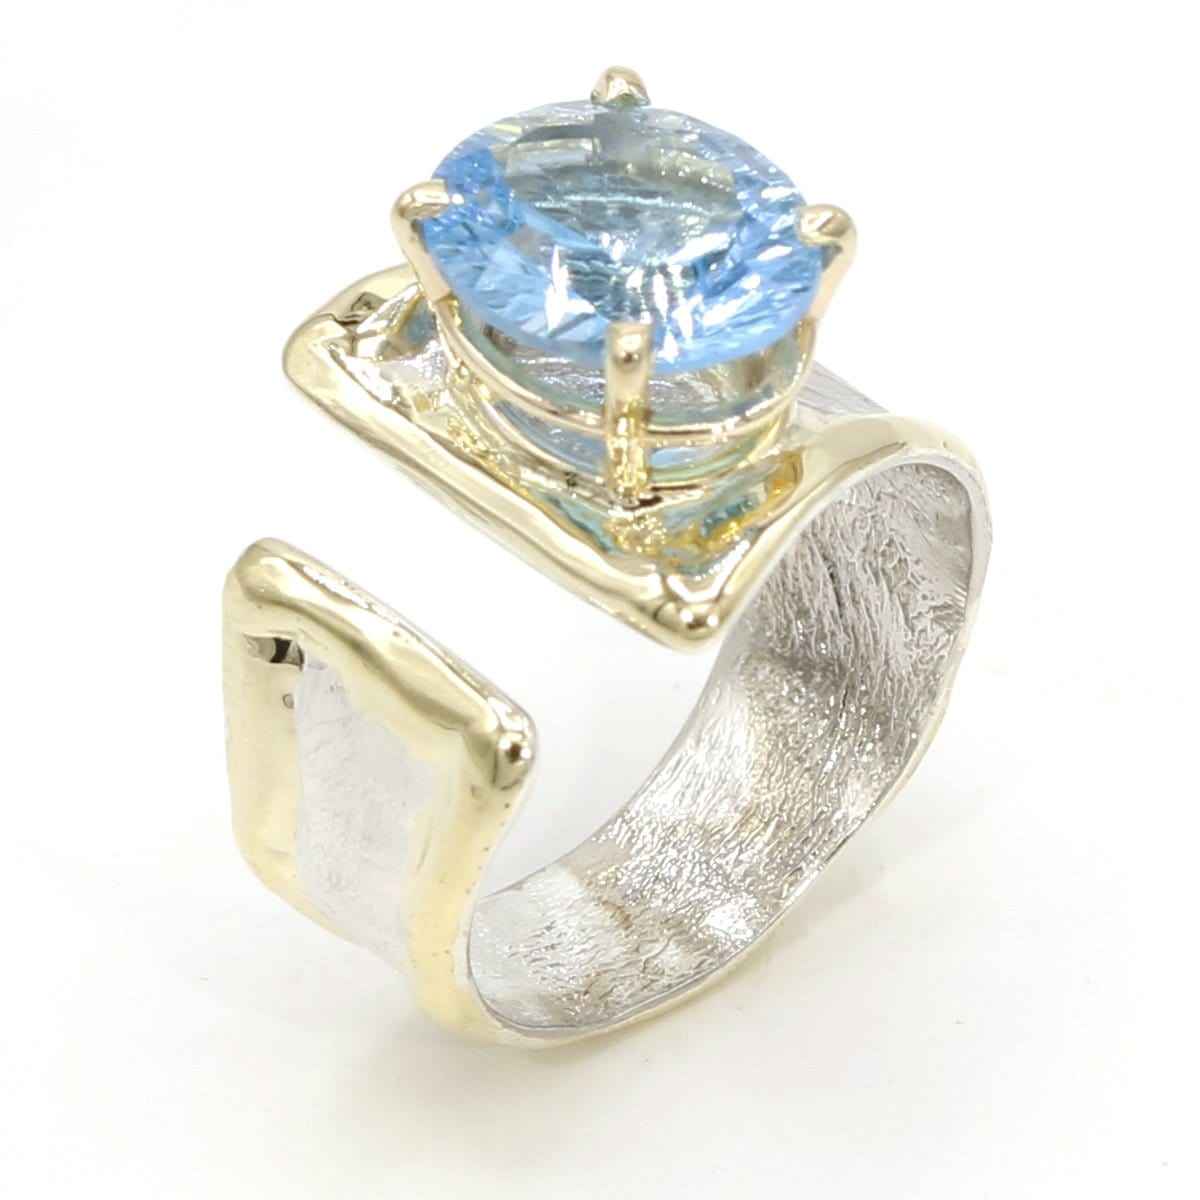 14K Gold & Crystalline Silver Blue Topaz Ring - 37406-Fusion Designs-Renee Taylor Gallery